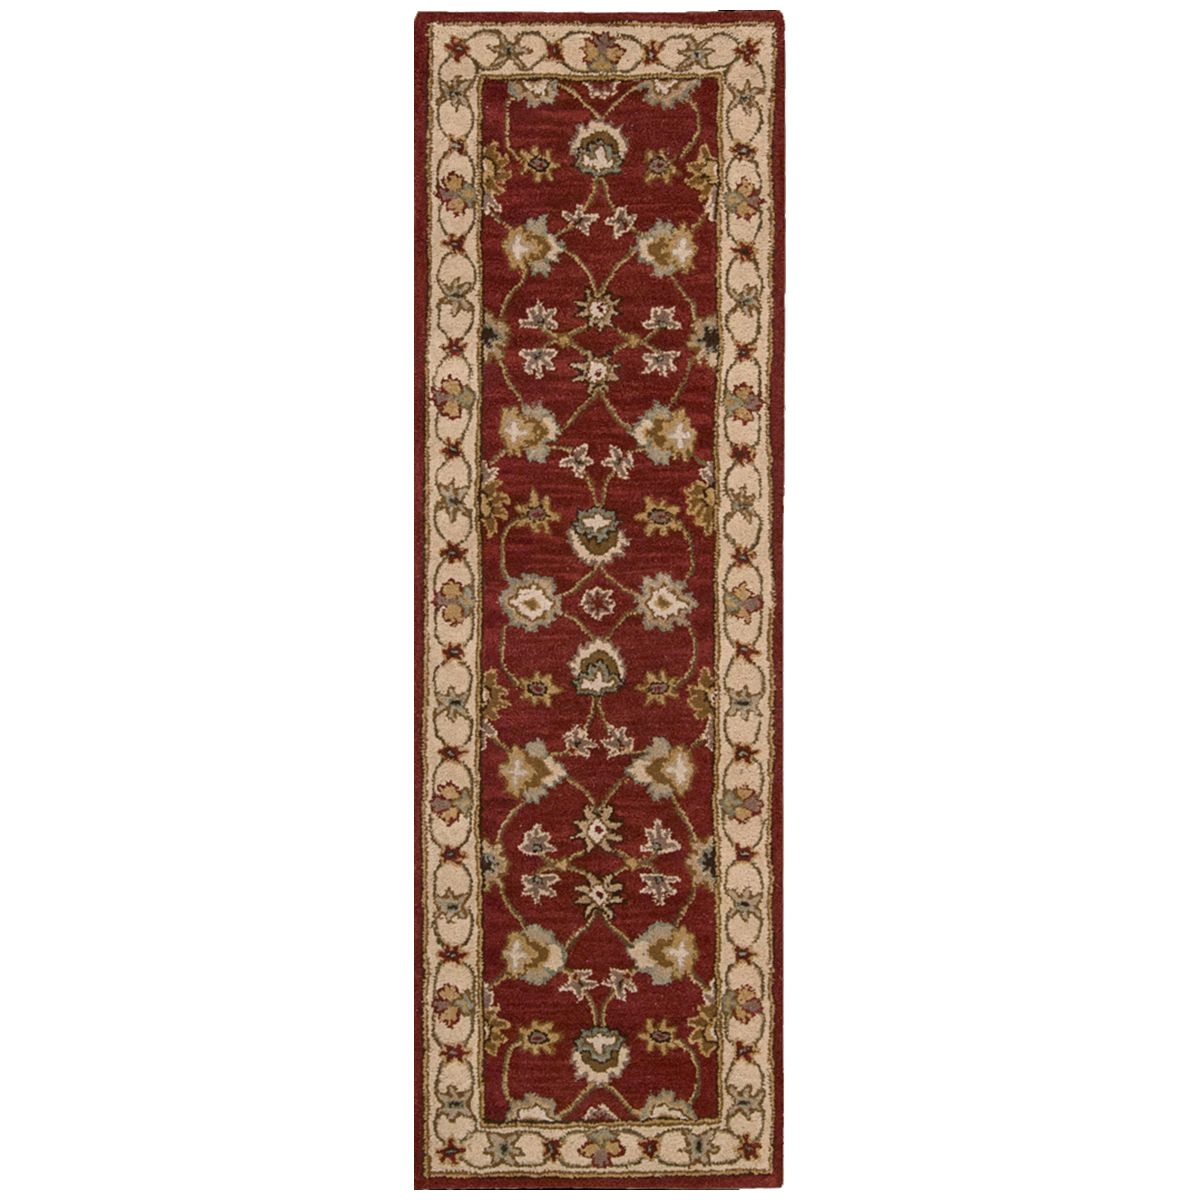 Qvc Large area Rugs Nourison India House Ih72 2 3 X 7 6 Red area Rug 41502 Nourision